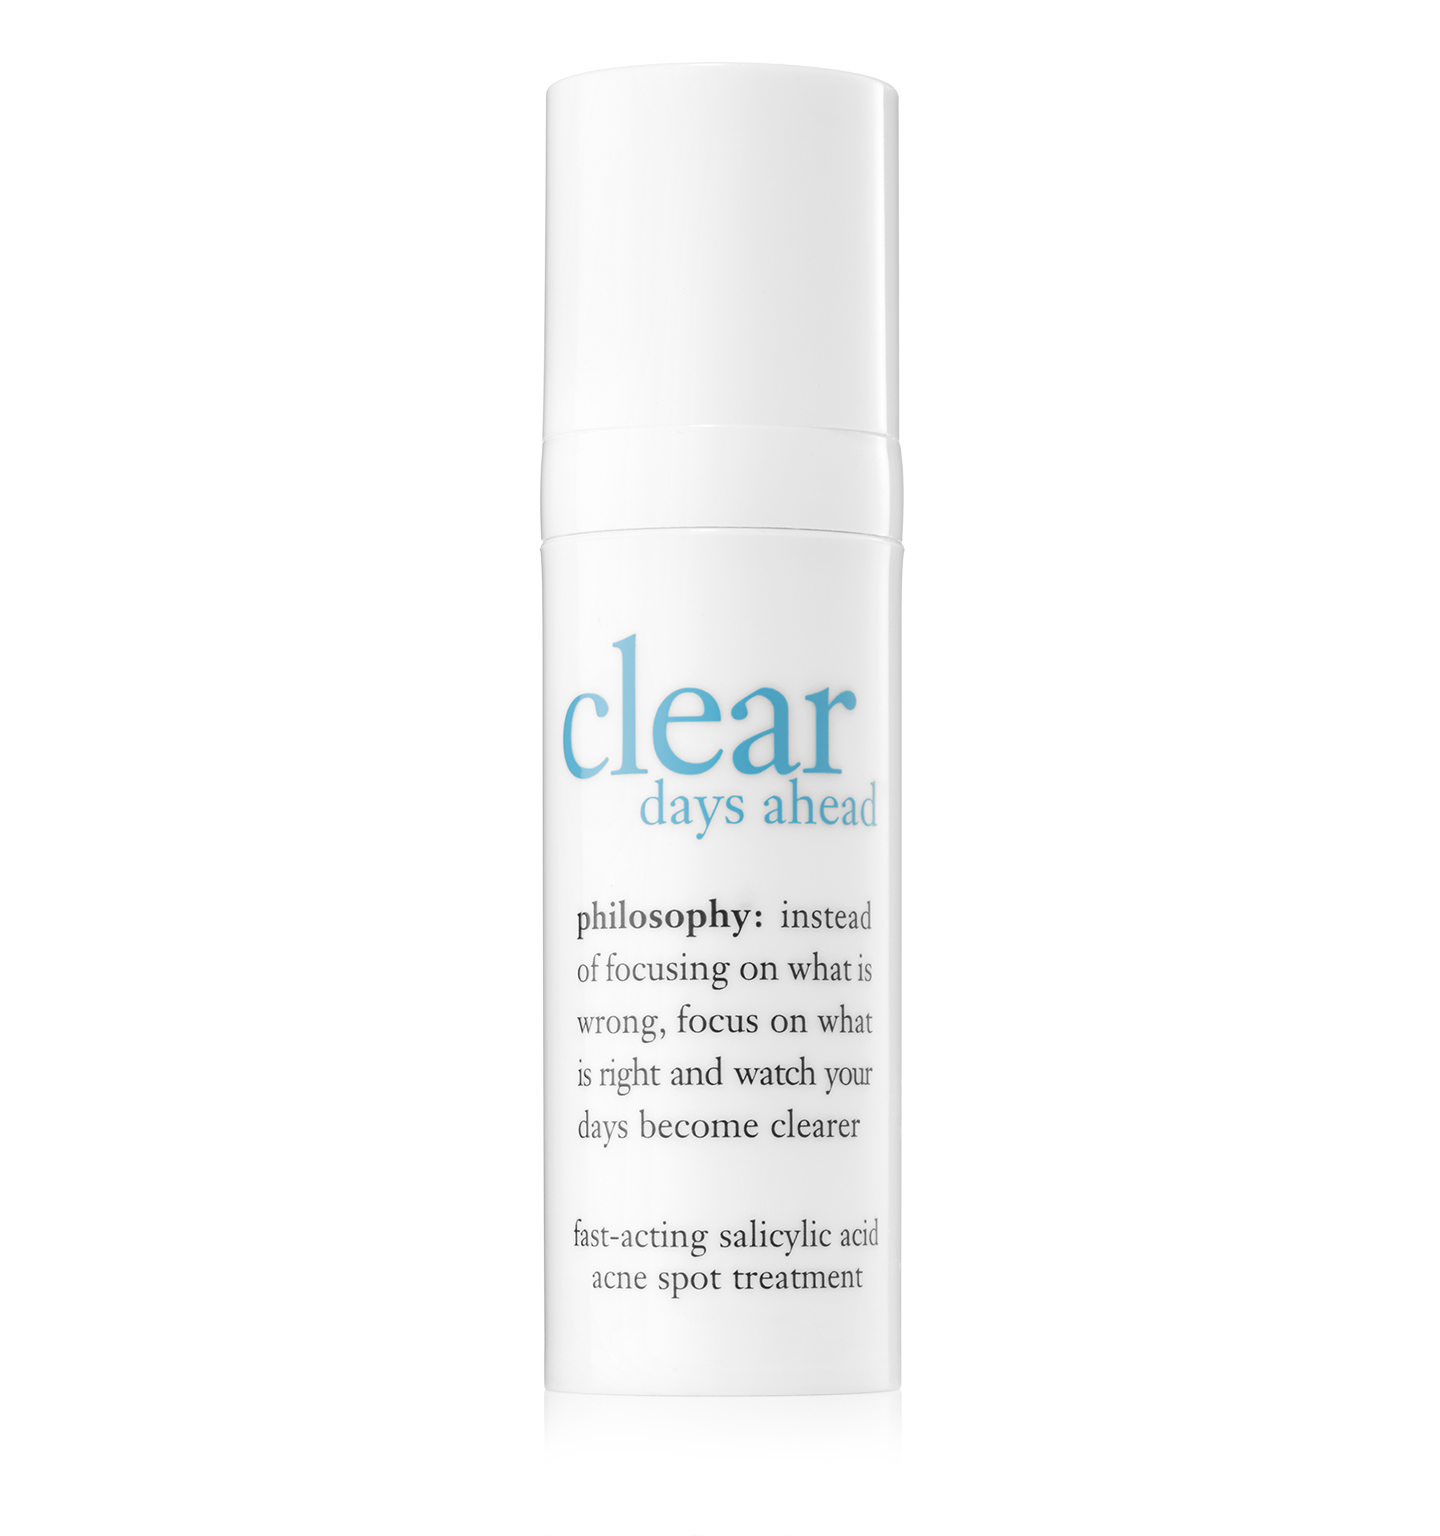 Philosophy  Clear Days Ahead Fast-Acting Salicylic Acid Acne Spot Treatment 0.5 oz Scentuals 100% Natural Lip Conditioner 5g - Caramel Cream